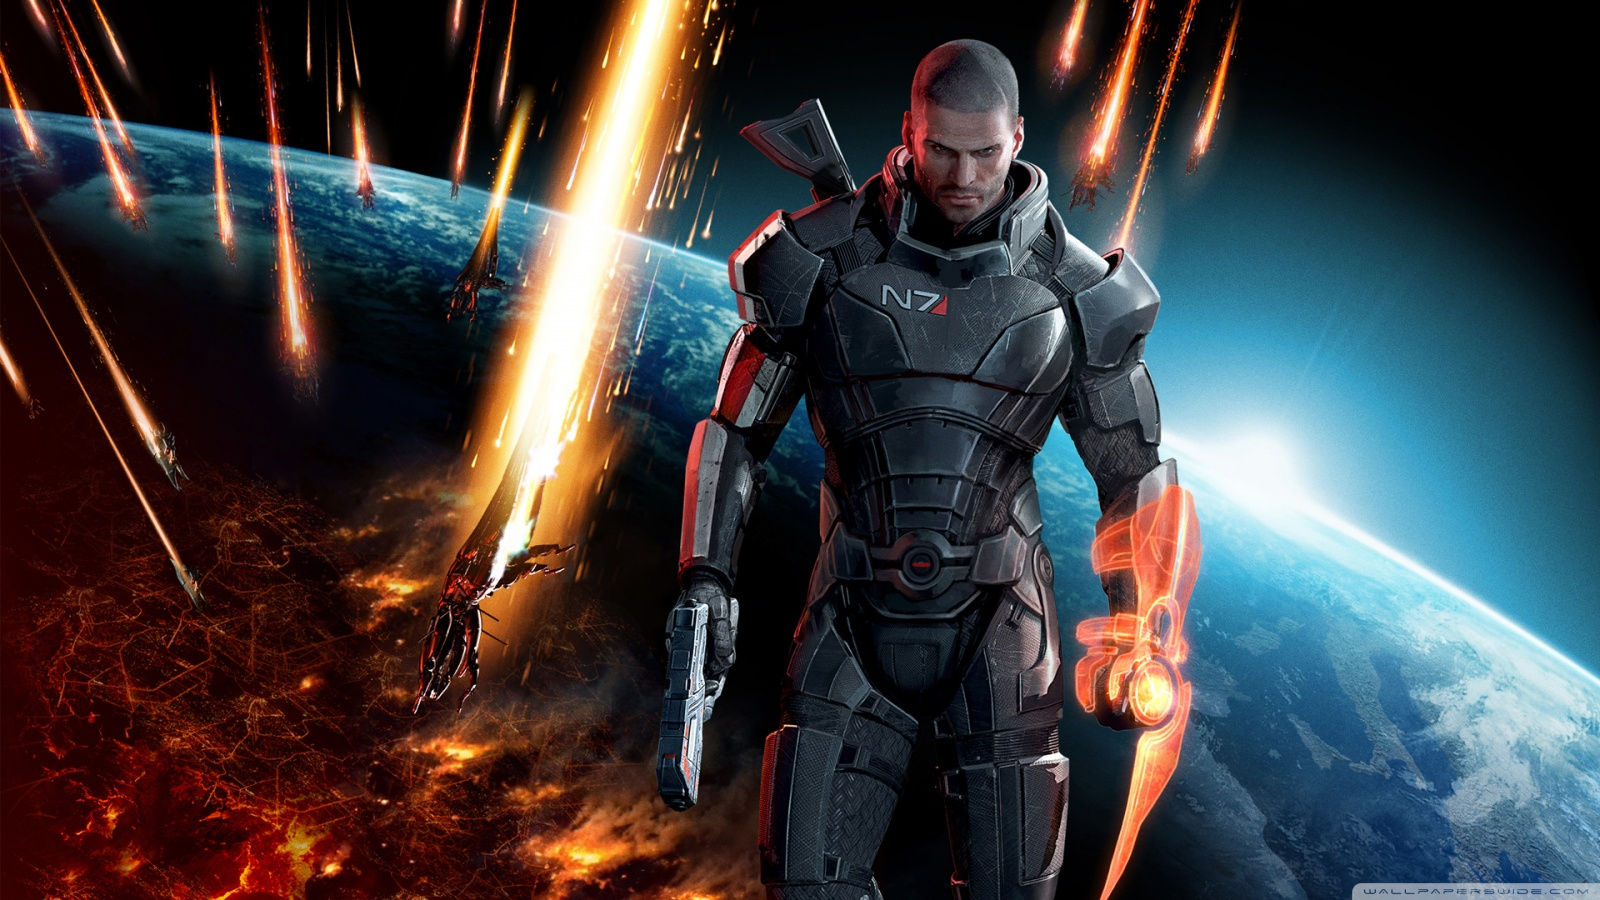 Mass Effect HD desktop wallpaper : Widescreen : High Definition